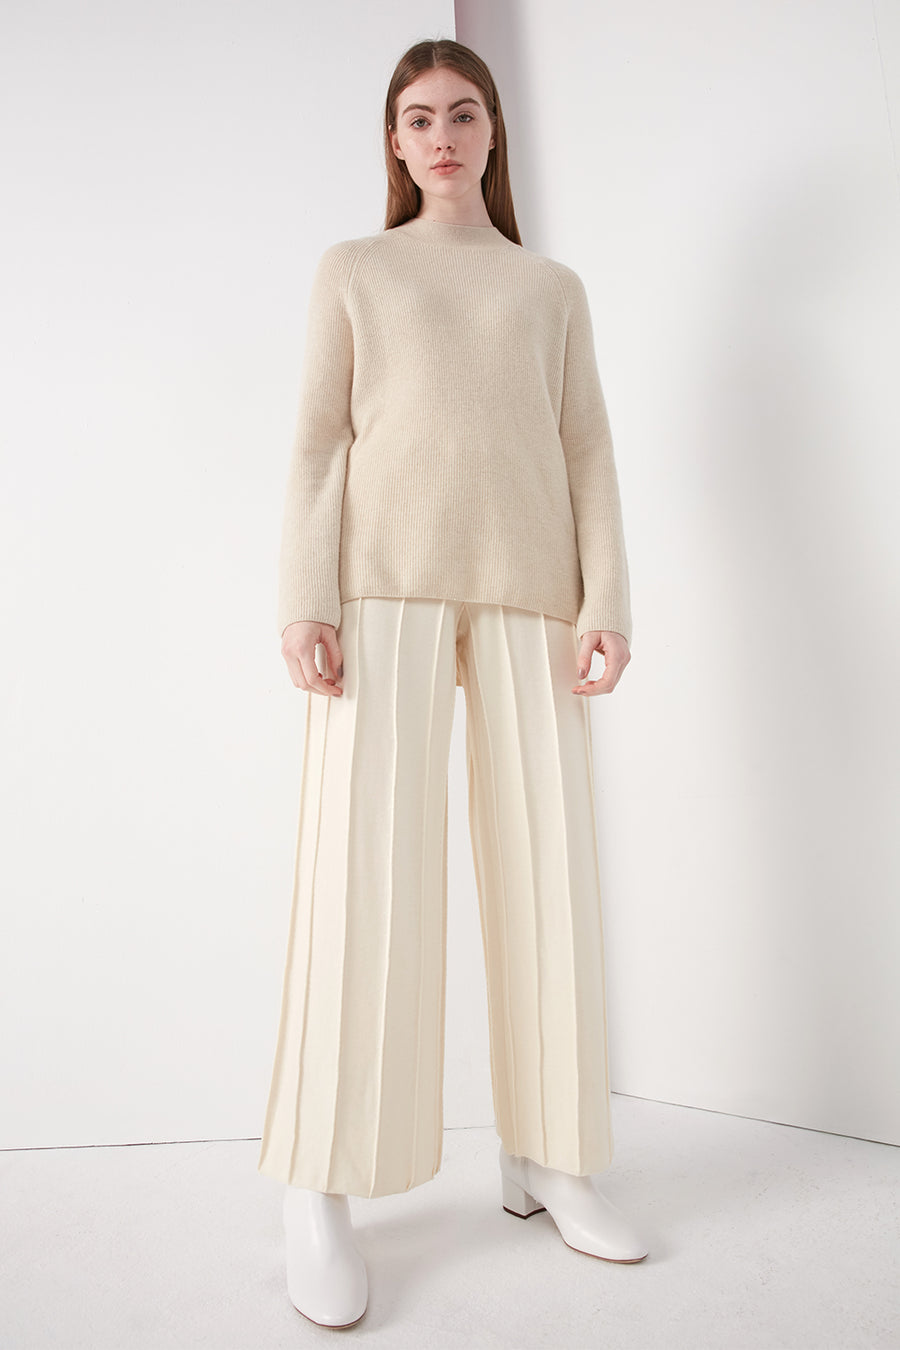 Pintuck wide leg trousers - Zelle Studio